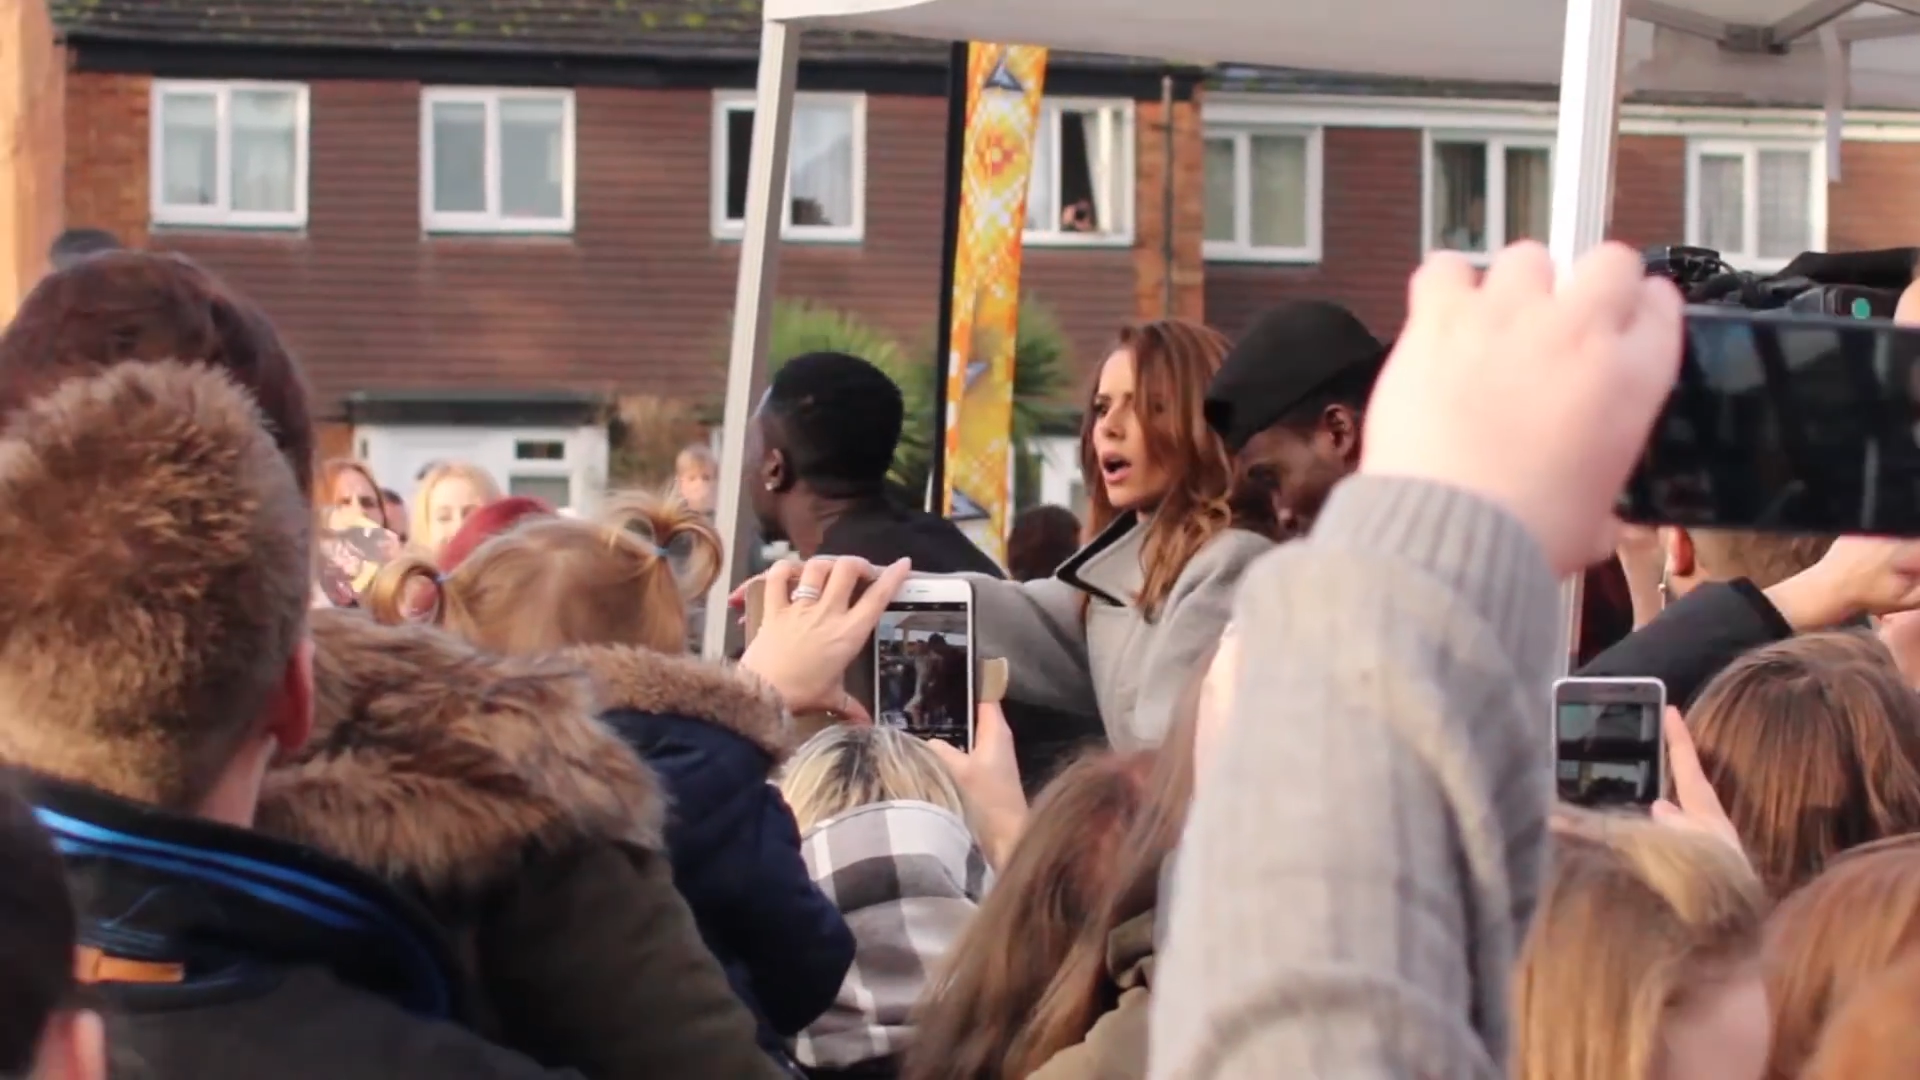 Reggie and Bollie dance with Cheryl Cole on a stage in a Farnborough Housing Estate for the XFactor.